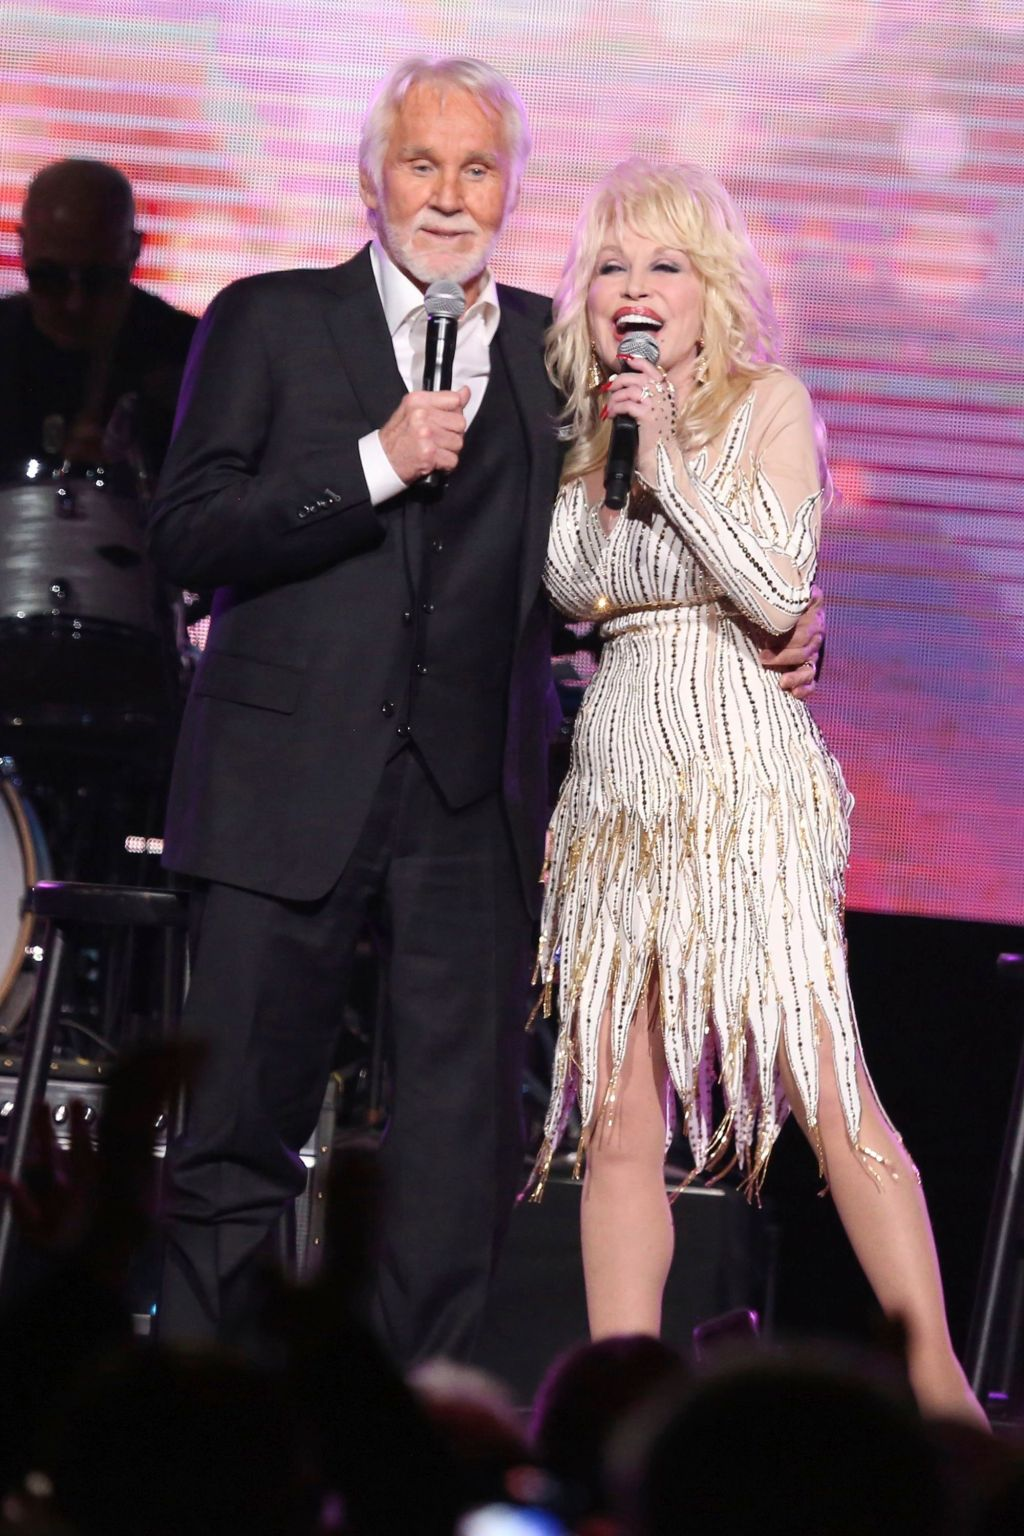 Kenny Rogers, Dolly Parton, All in for the Gambler farewell